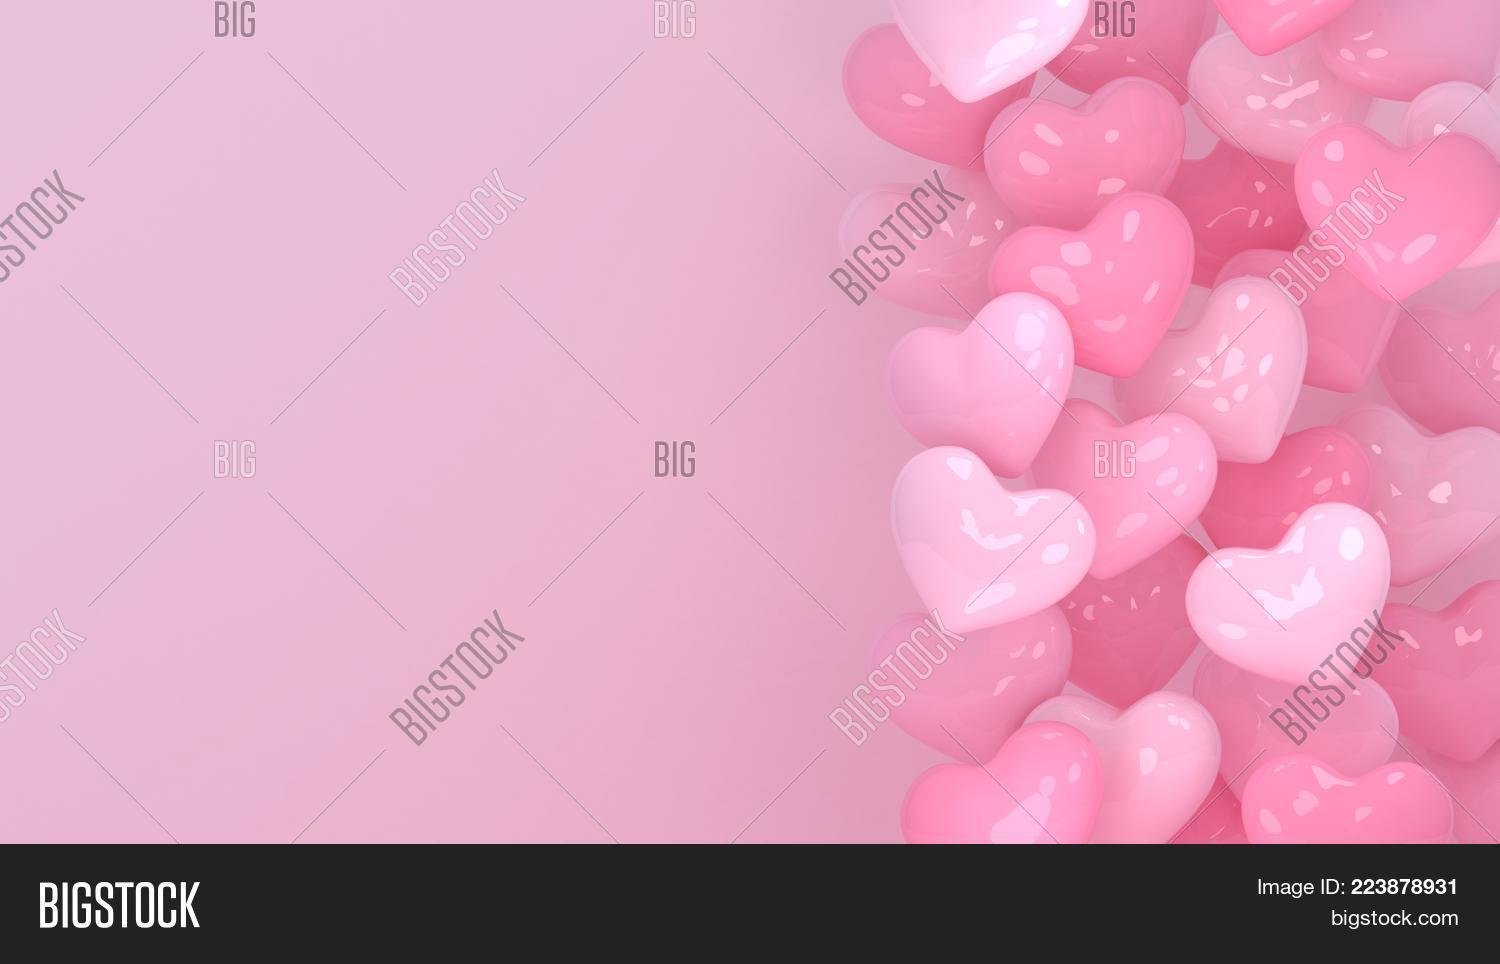 Hearts Background Image Photo Free Trial Bigstock